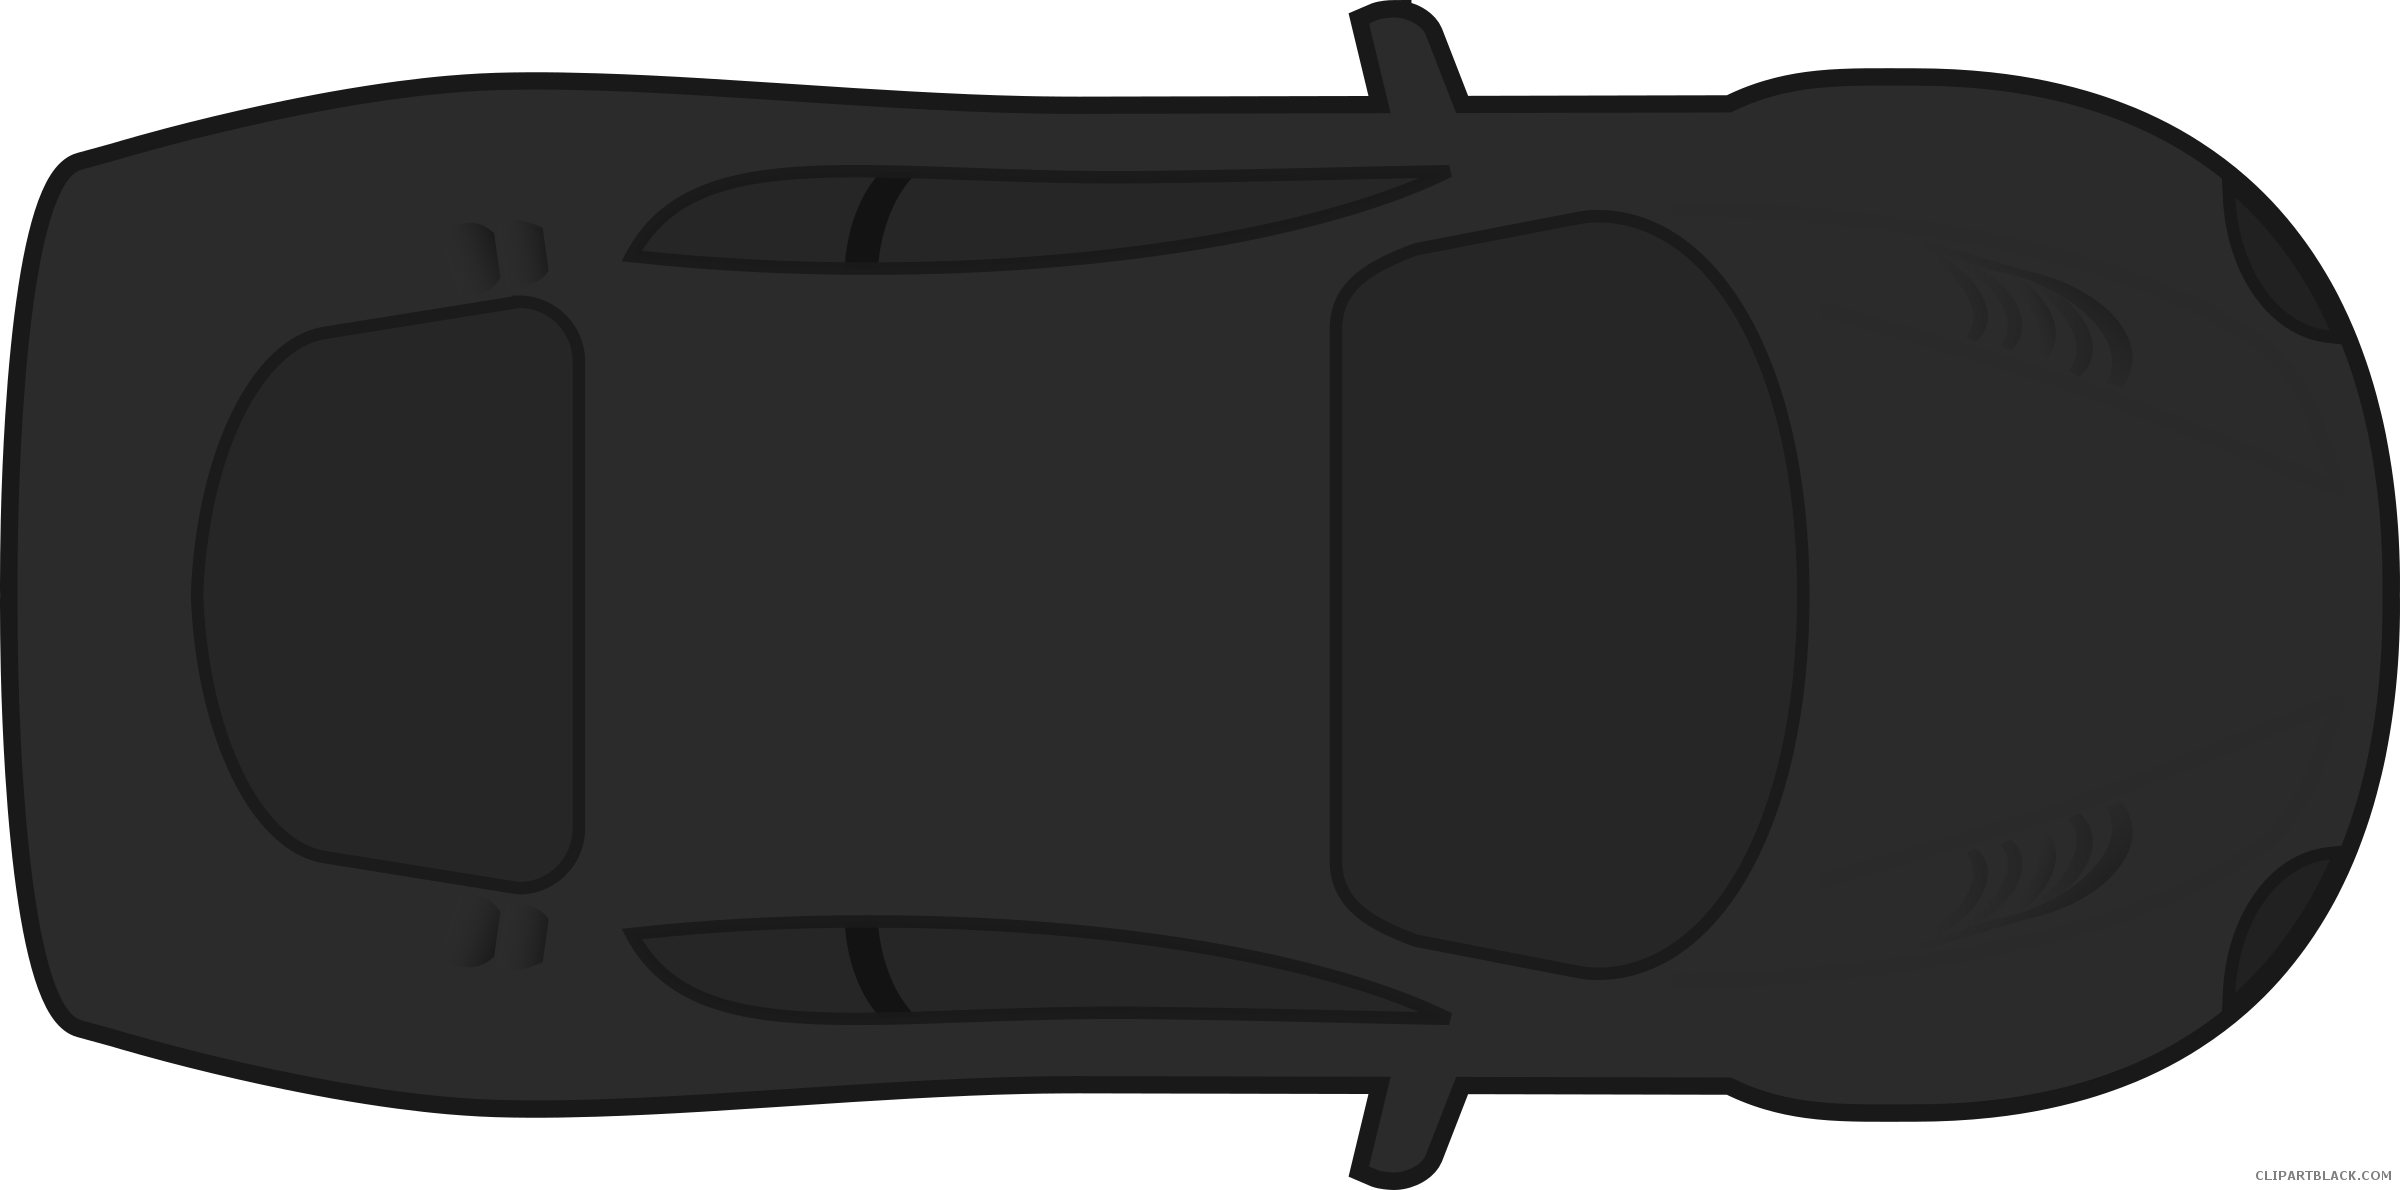 Car top view clipart clip art library library Car Top View Clipart - ClipartBlack.com clip art library library